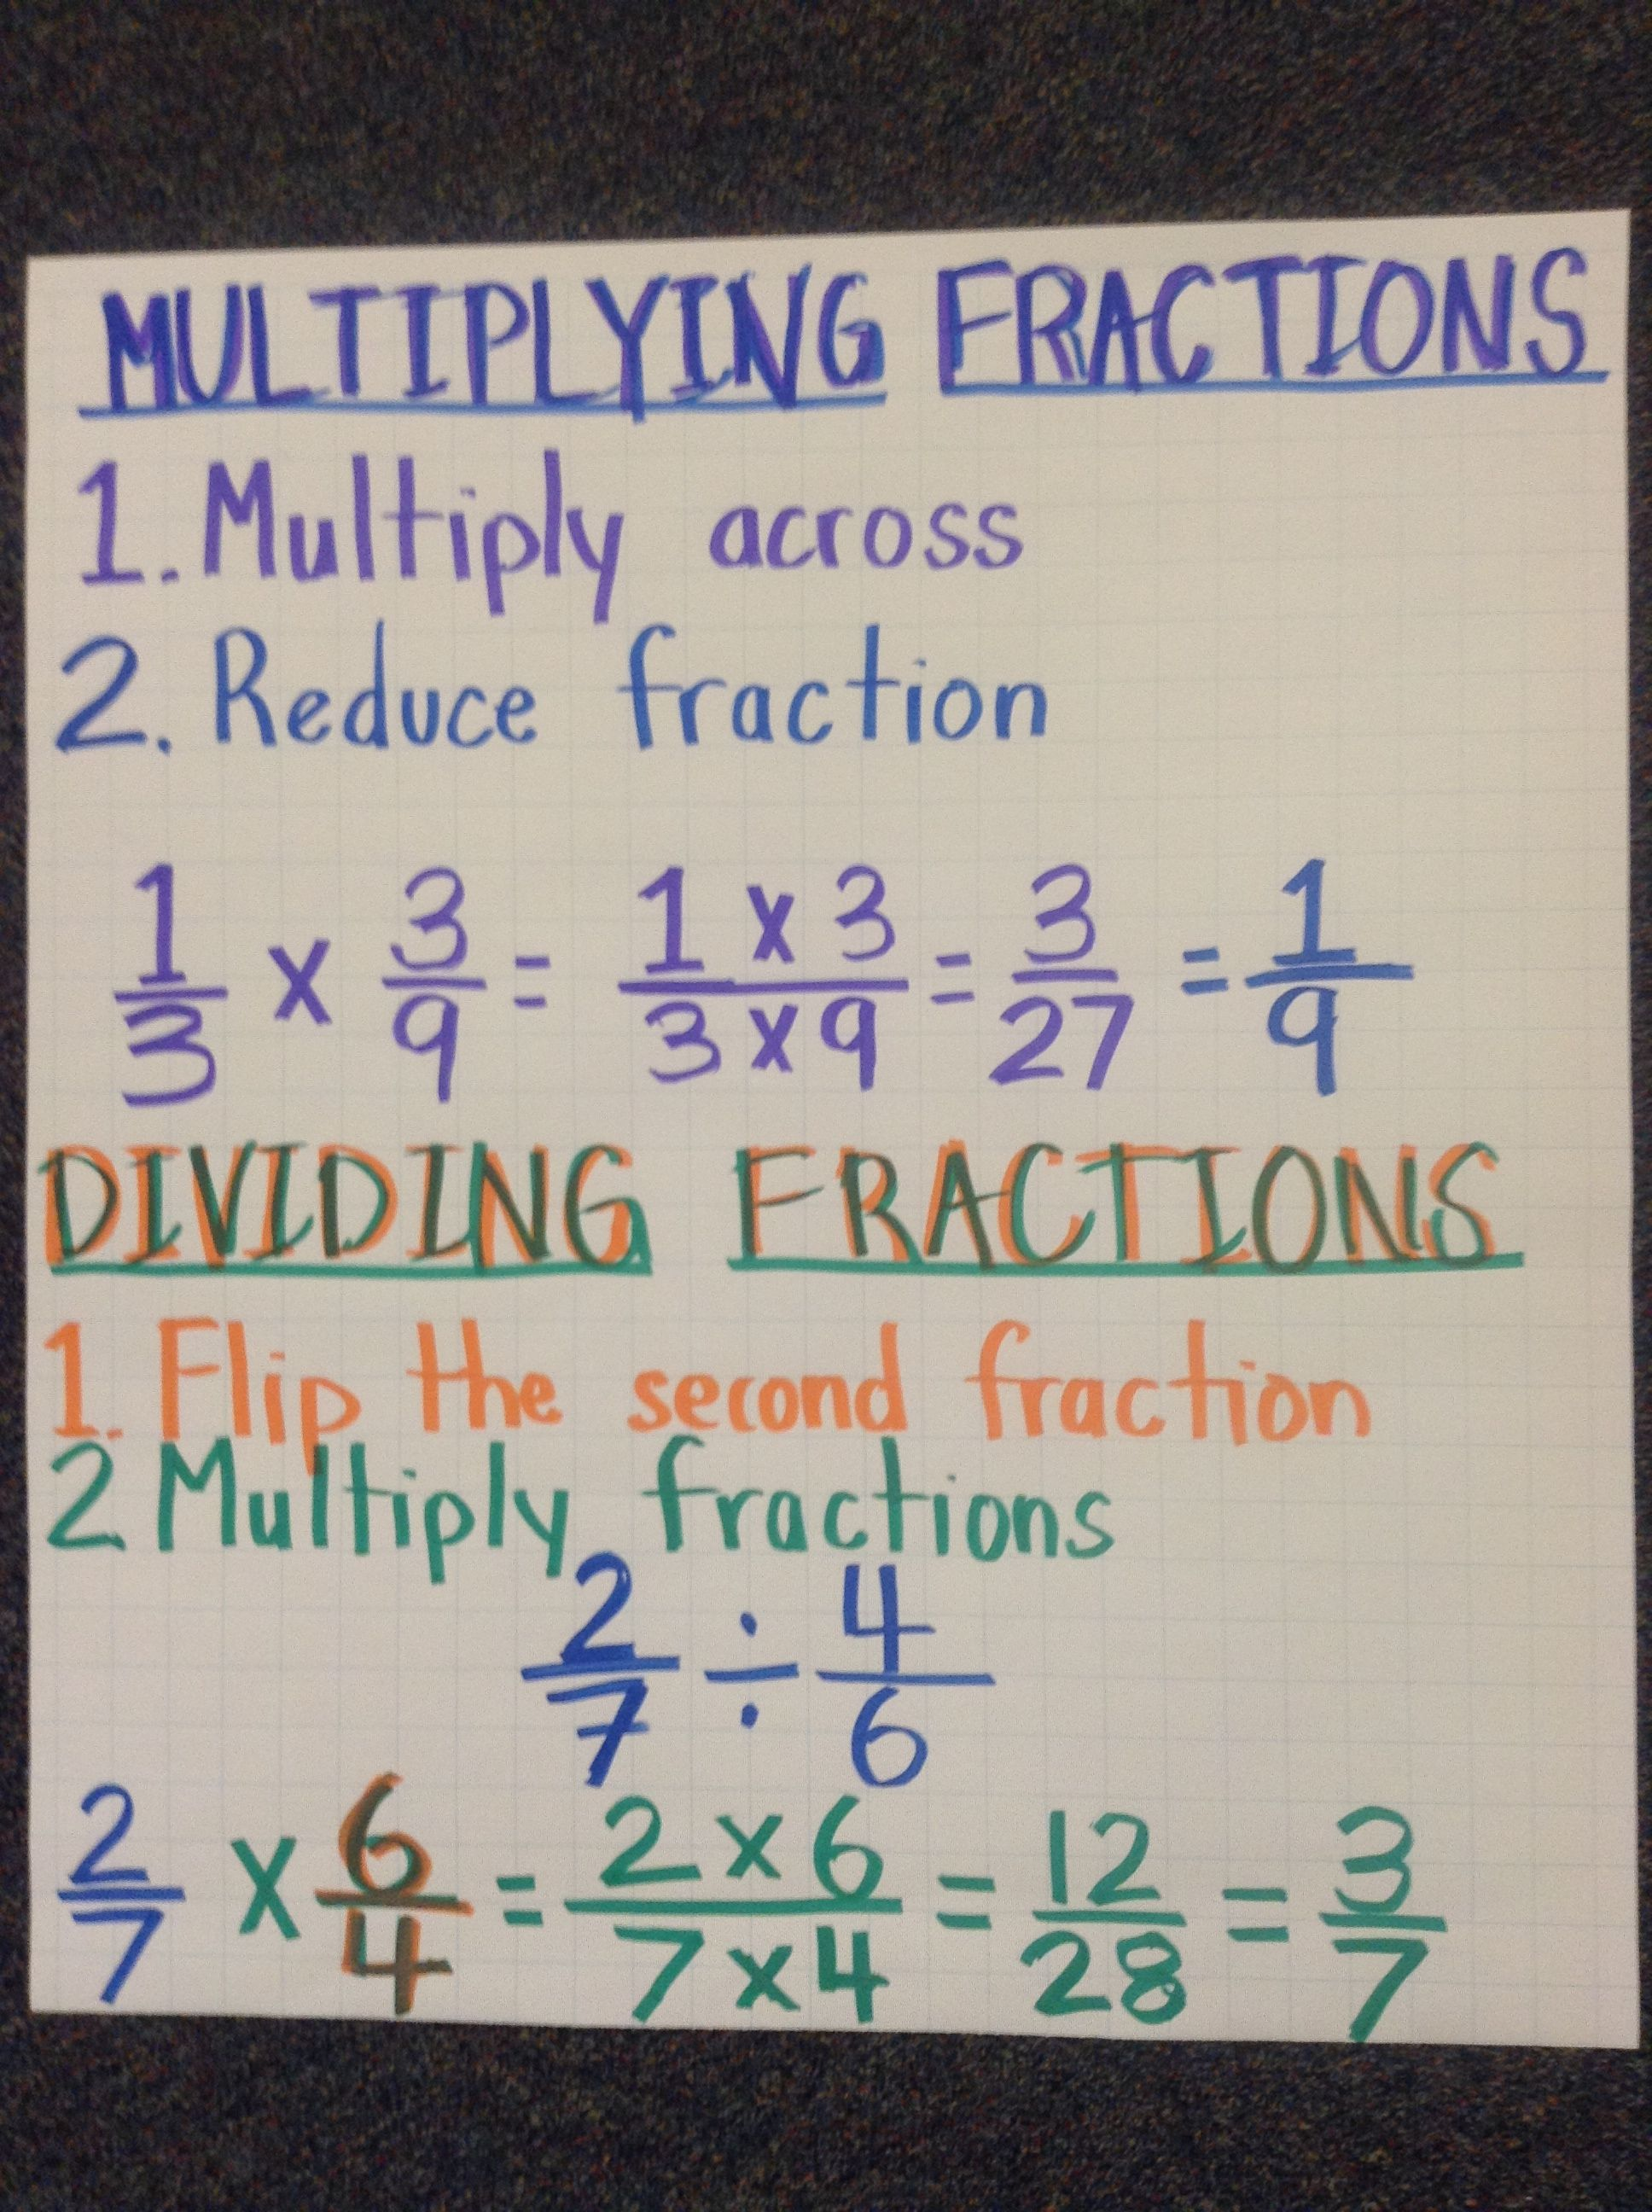 Multiplying And Dividing Fractions With Images Math Methods